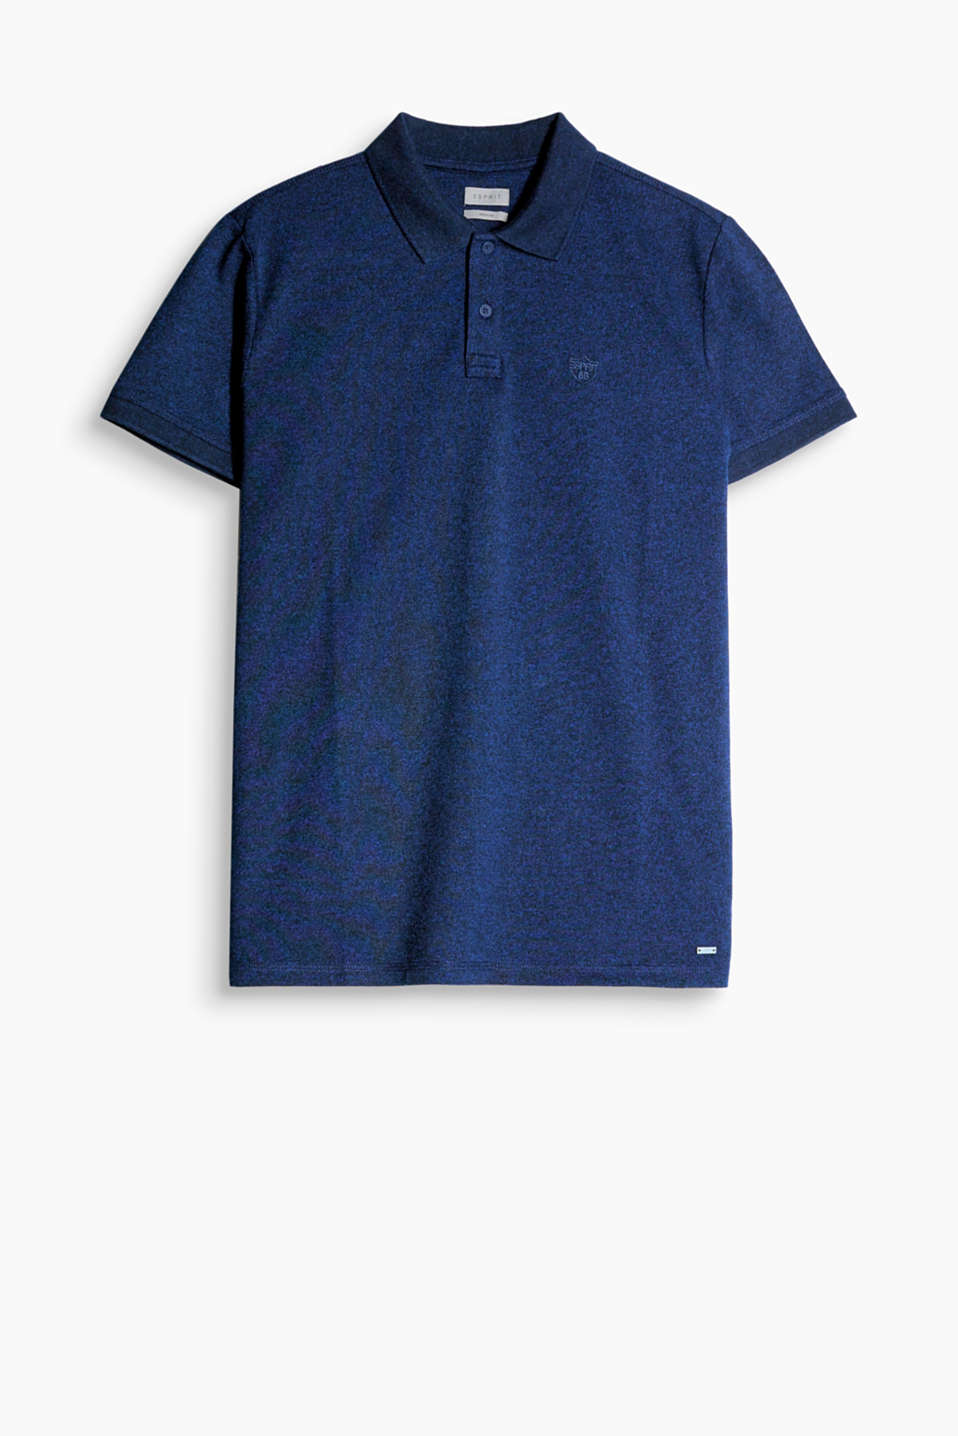 Lightweight blended cotton piqué polo shirt in a fashionable melange finish